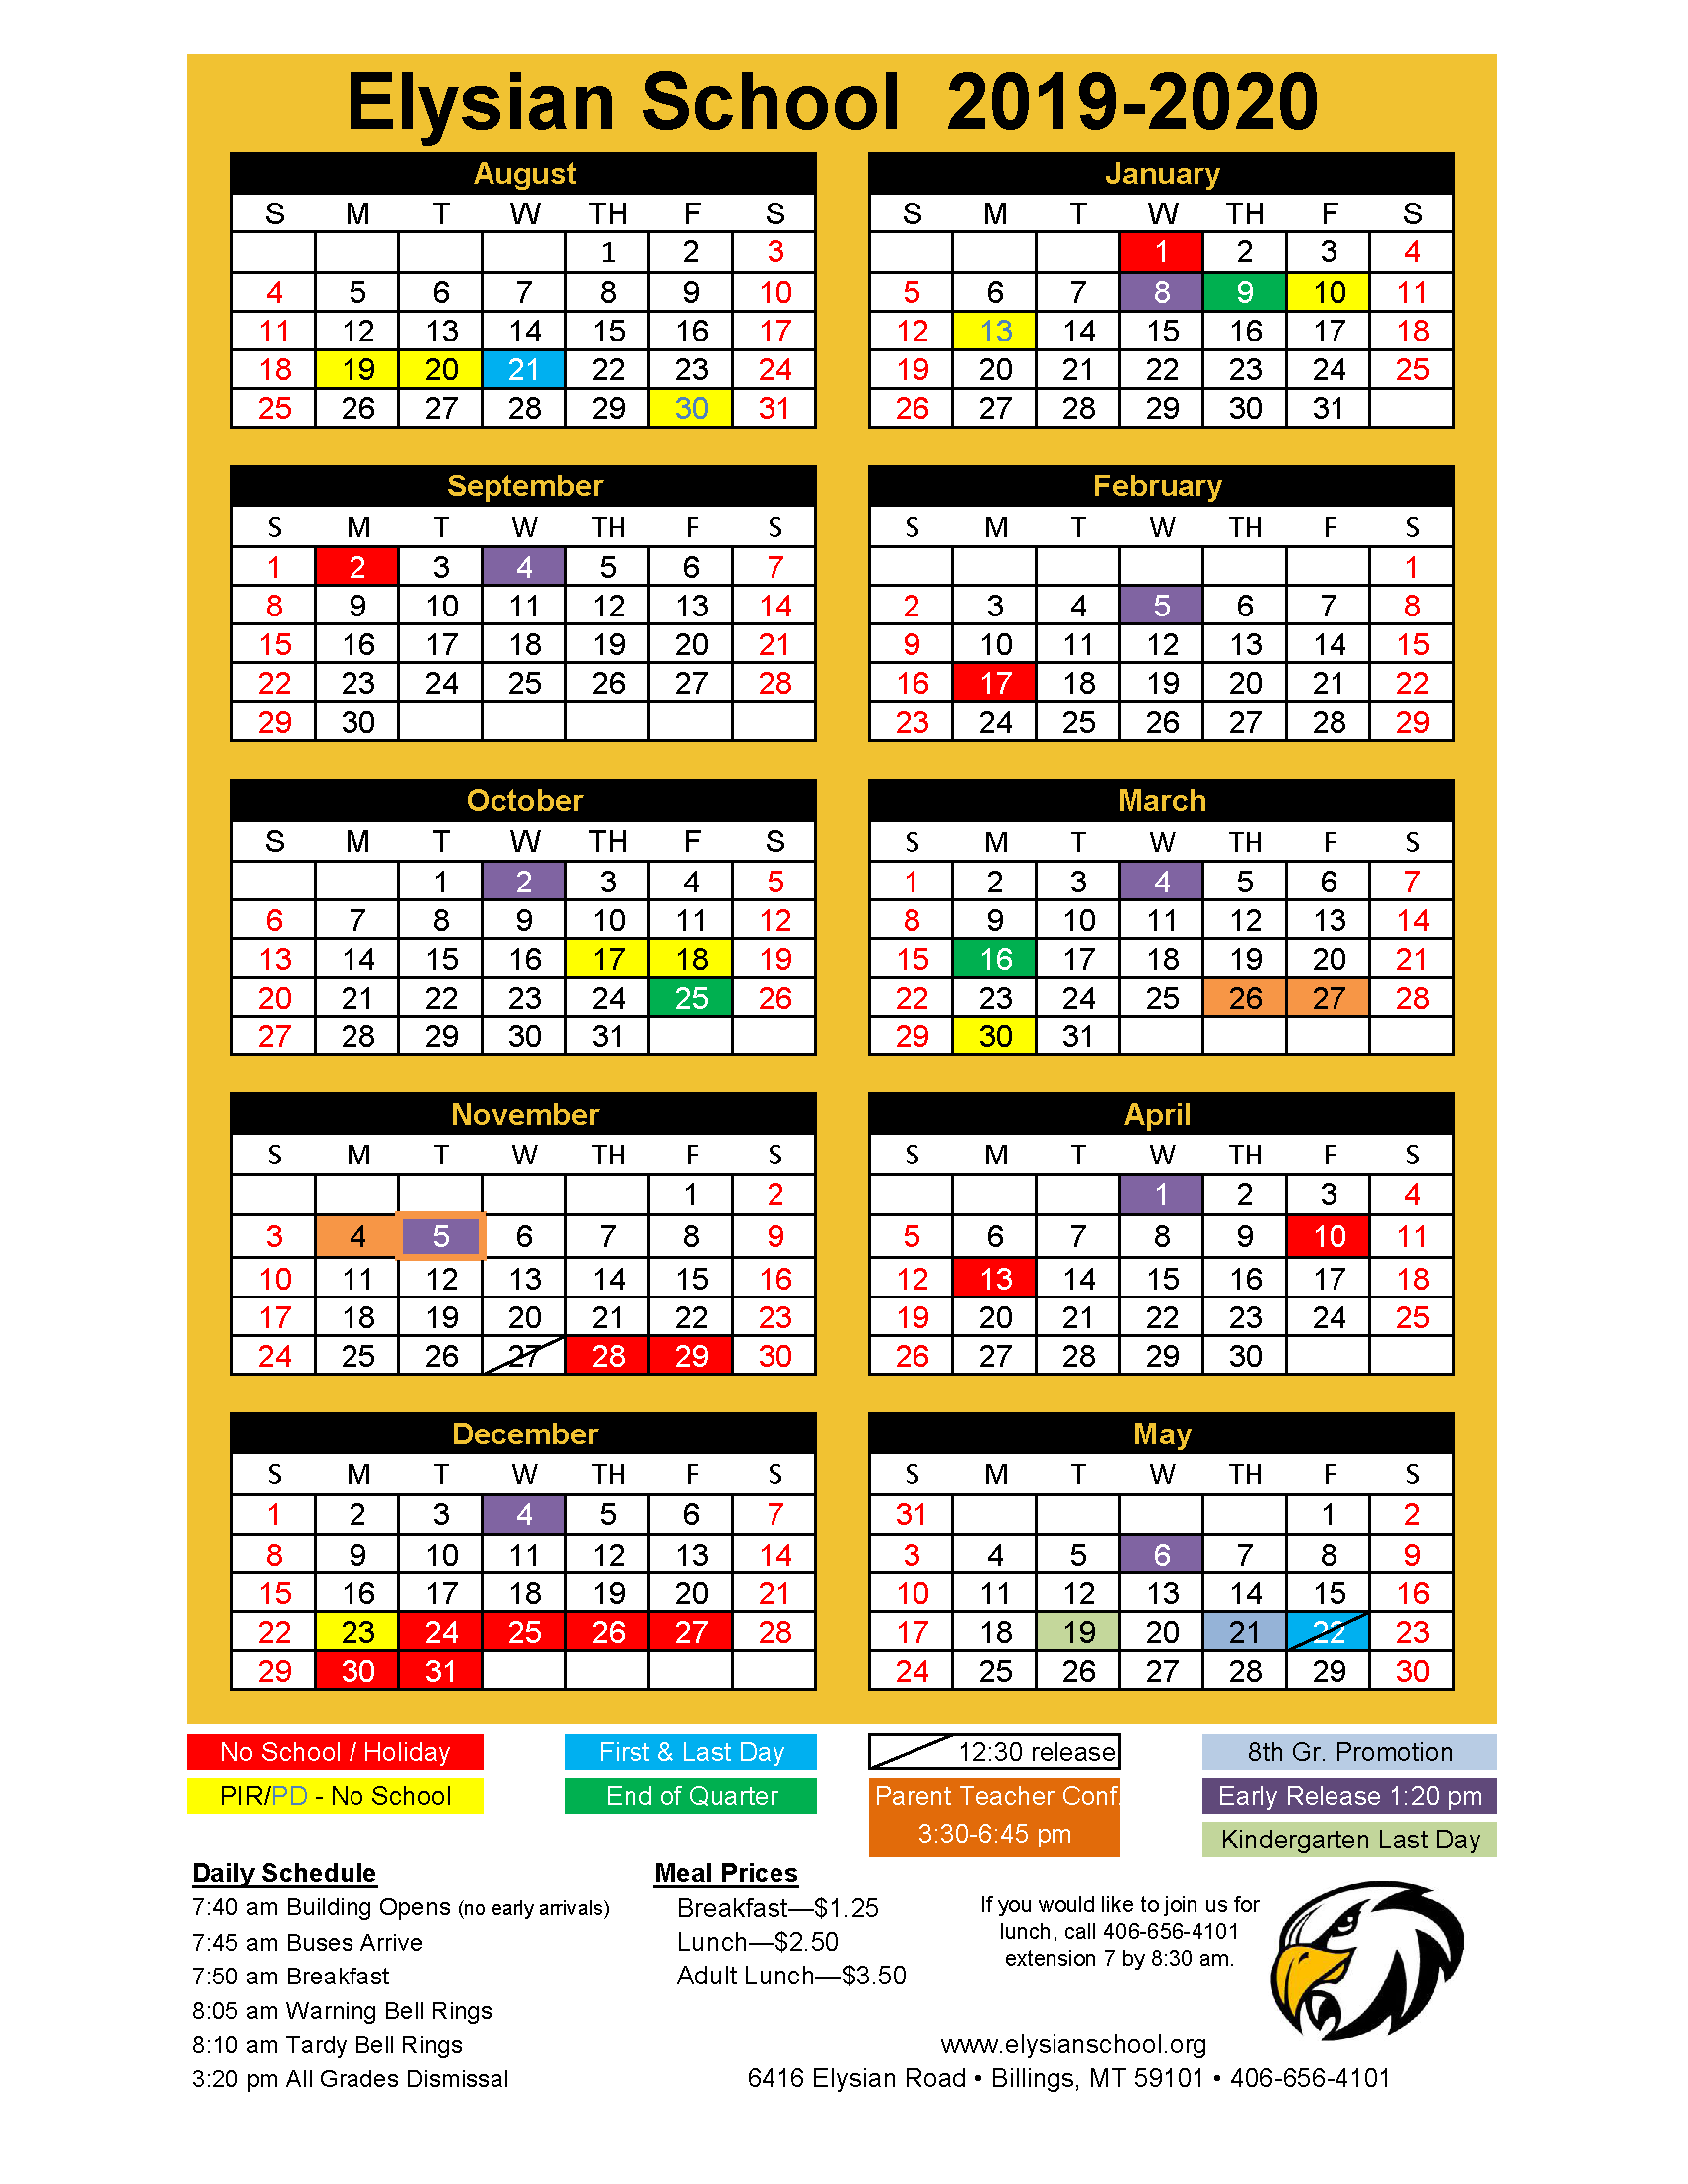 2019-2020 Year Calendar | Elysian School for Billings School Distric 2 Calendar